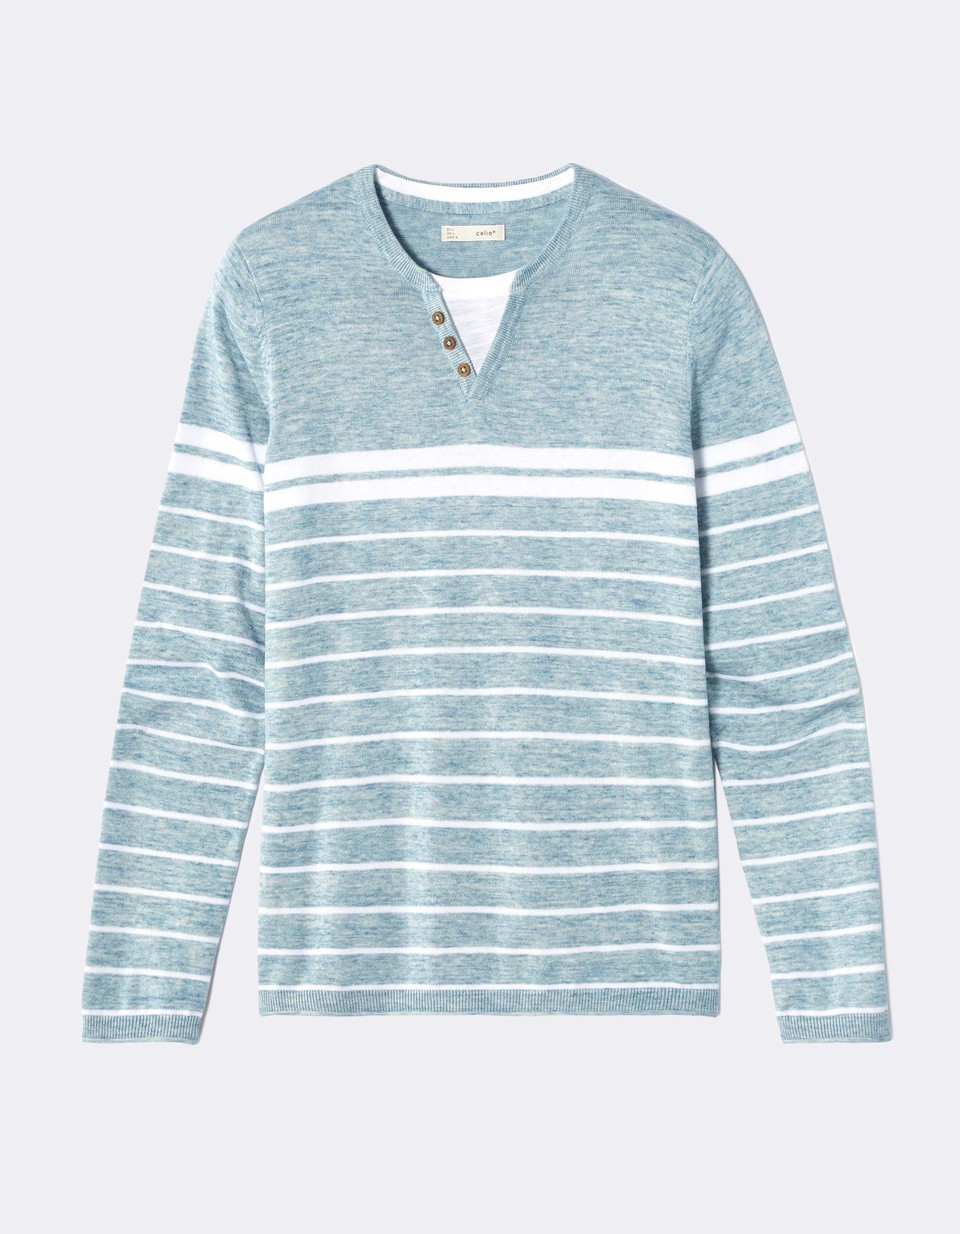 Pull col henley 100% coton à rayures - NECHILLRAY_TURQUOISE - Image à plat - Celio France